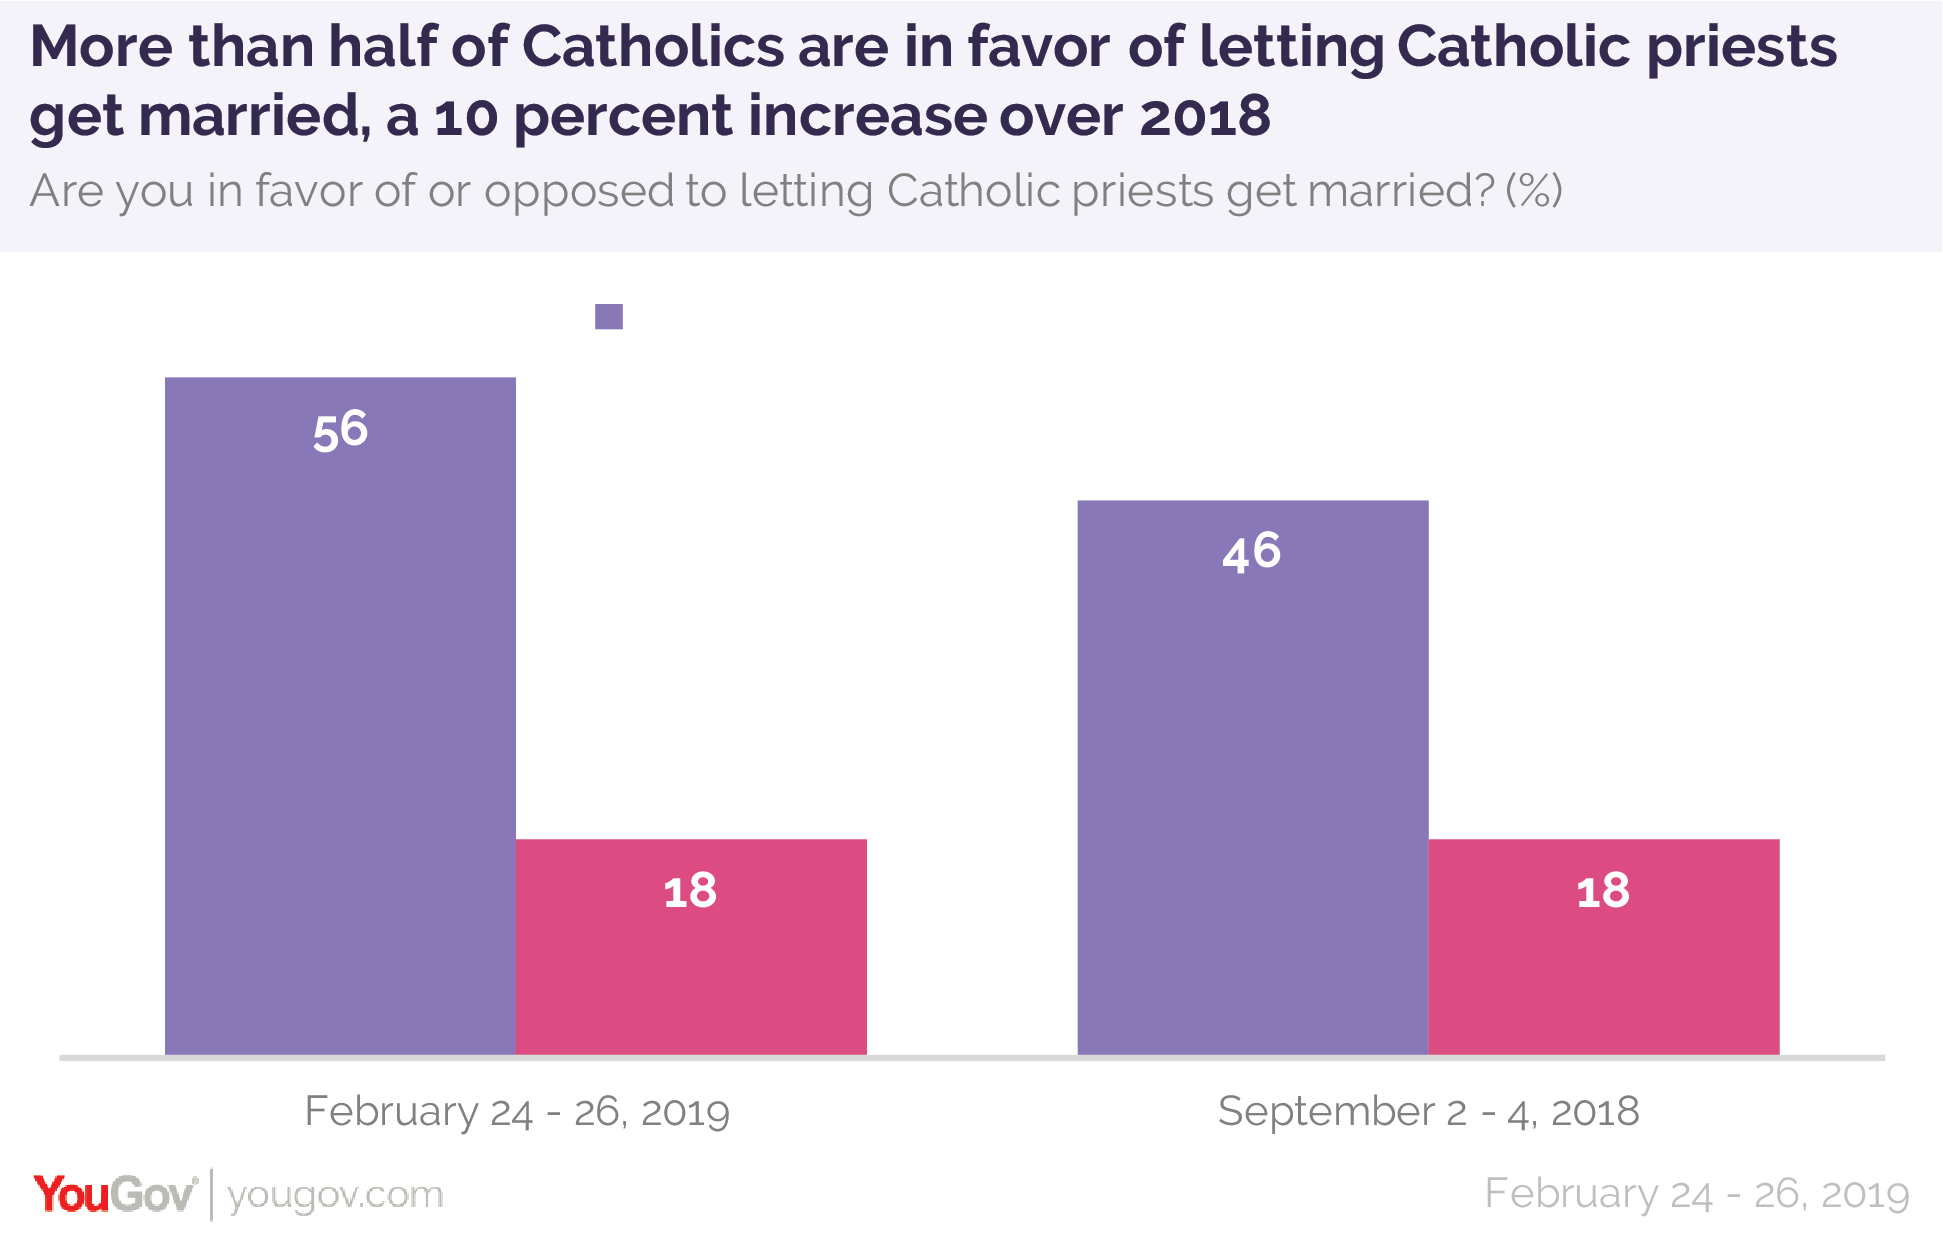 More than half of Catholics are in favor of letting Catholic priests get married